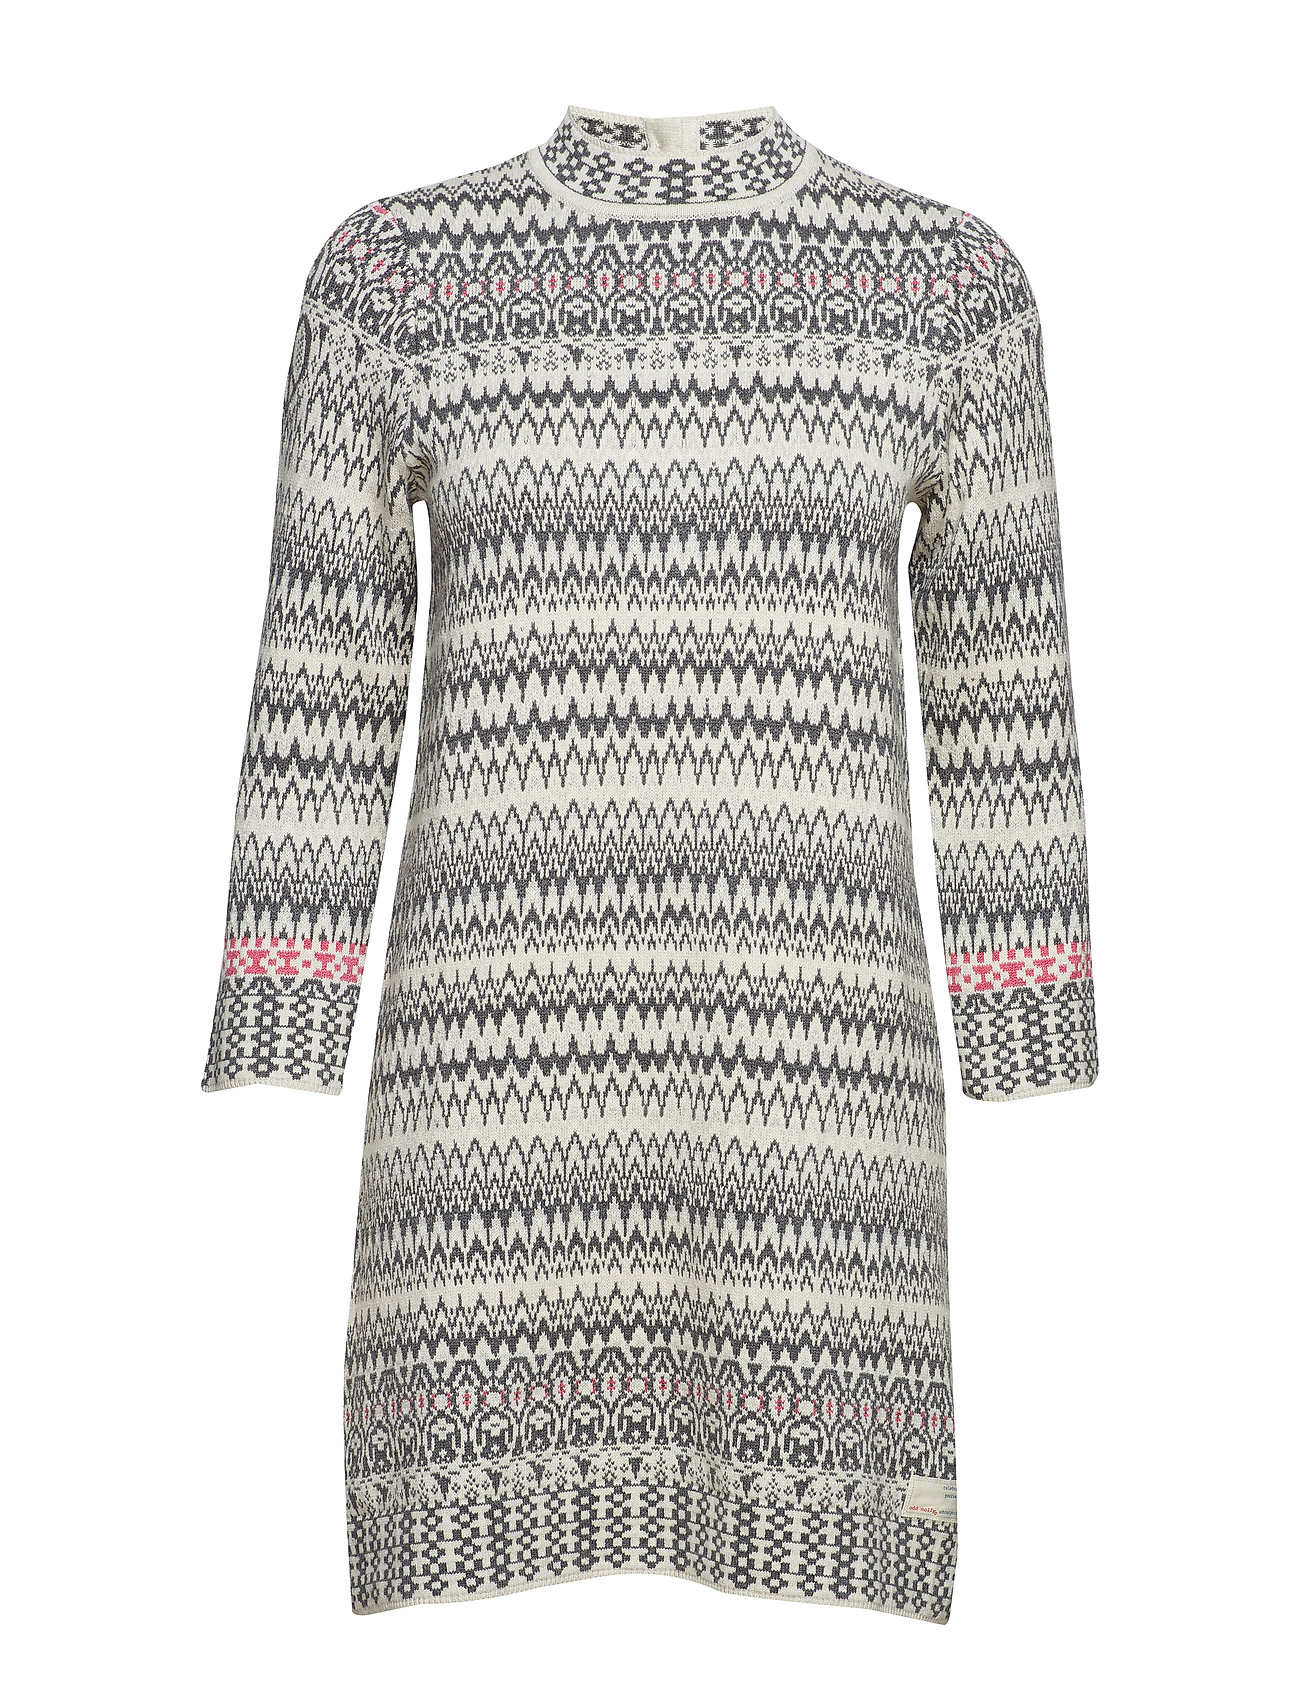 ODD MOLLY vivid vibration dress - CHALK